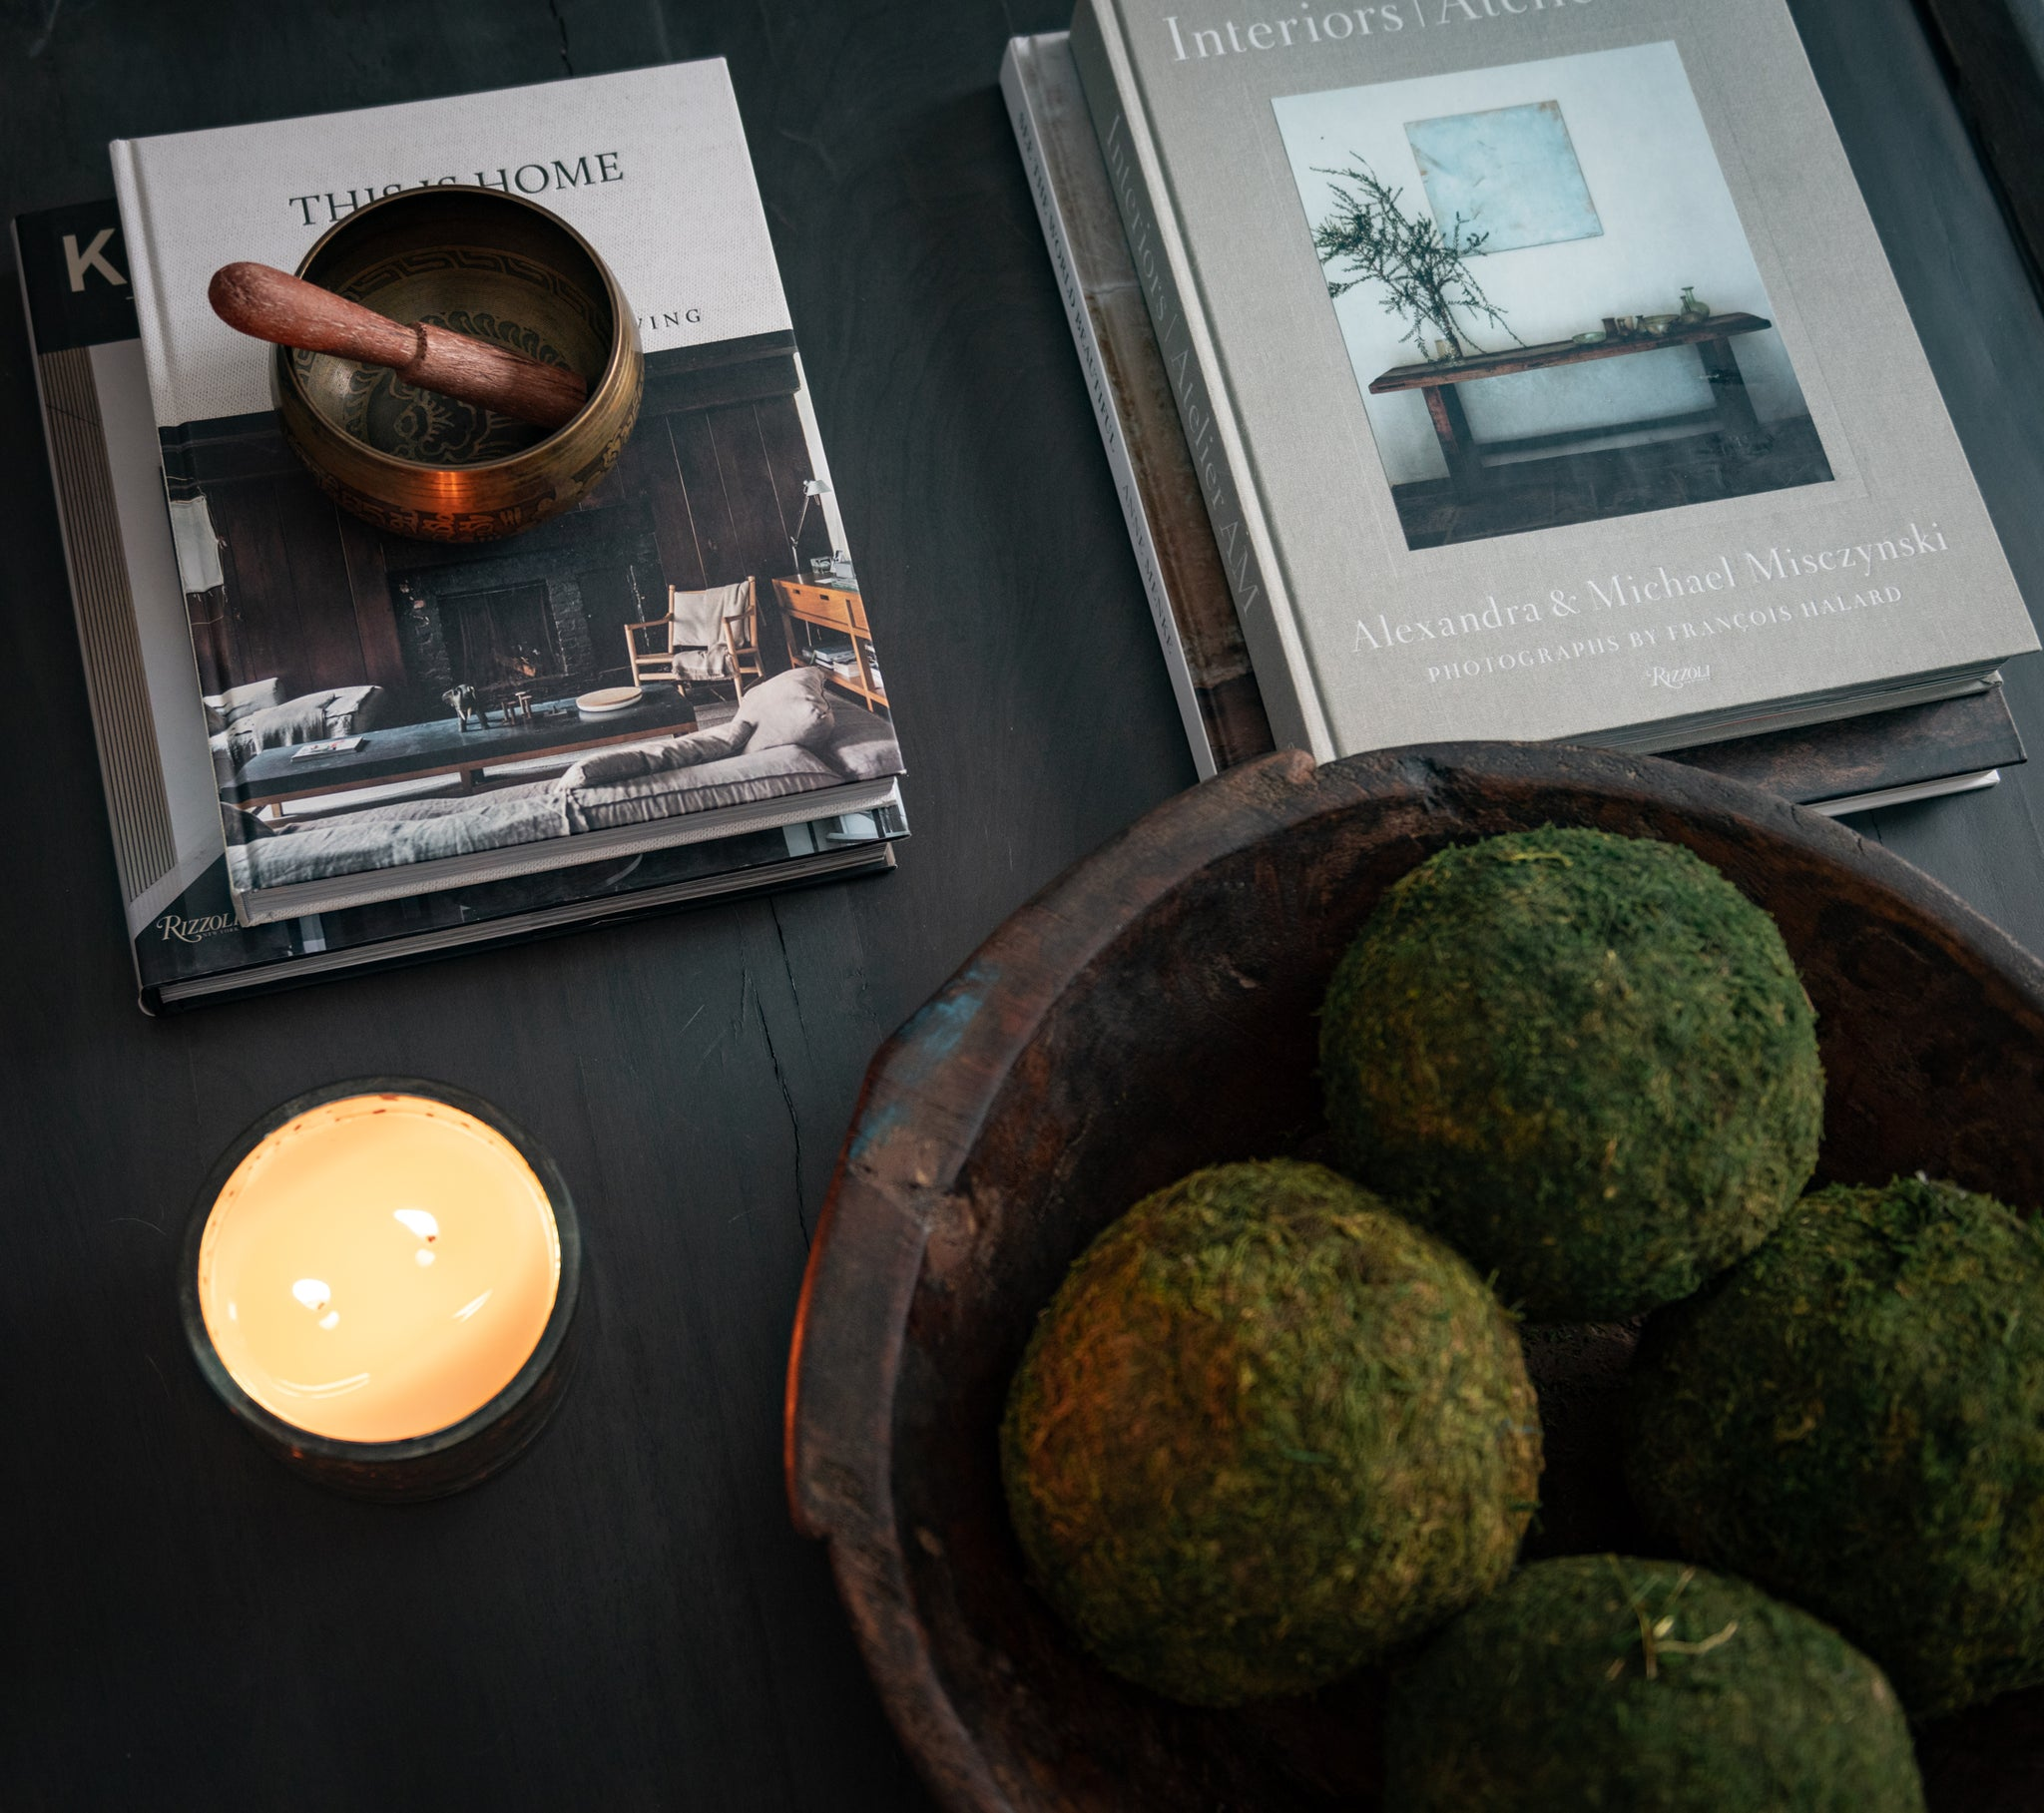 Crossing Bridge zoom in on coffee table. Books, singing bowl, candle.